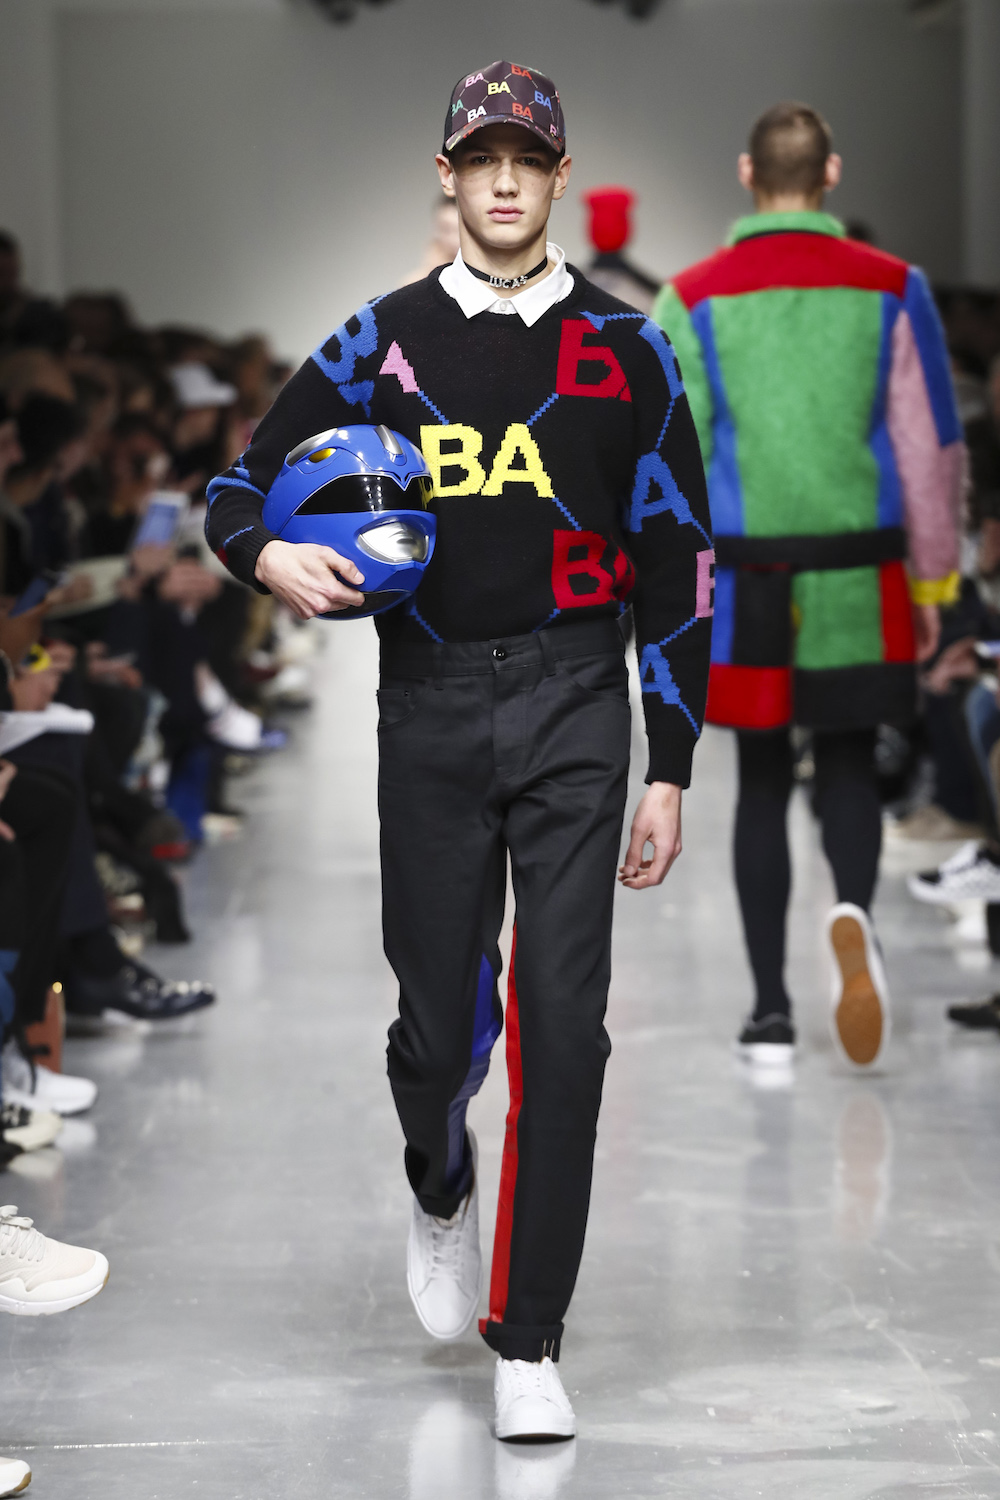 Bobby Abley Mighty Morphin Power Rangers - 1839462